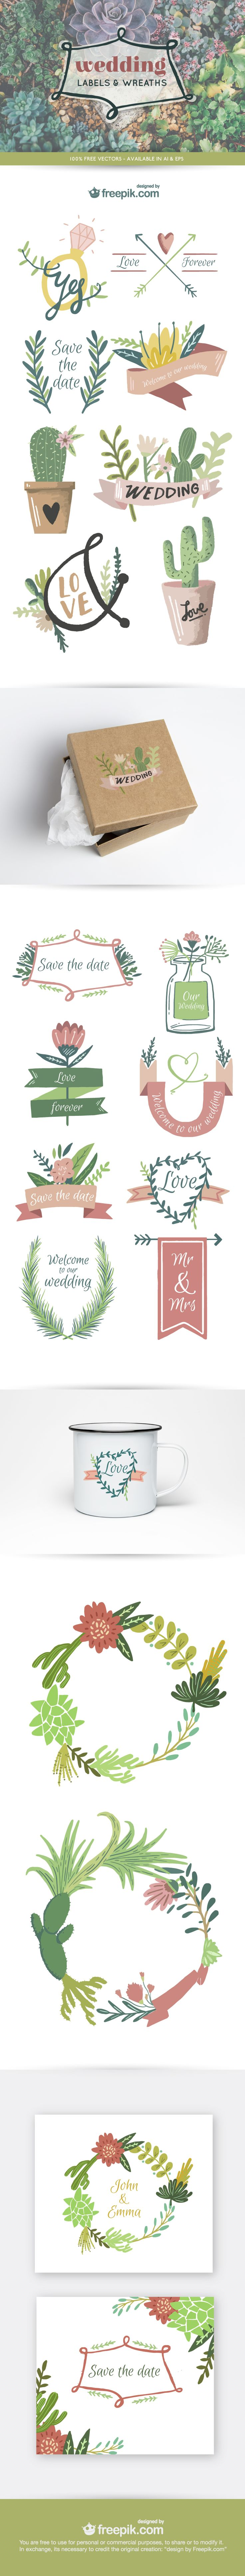 Download a FREE vector wedding graphics pack